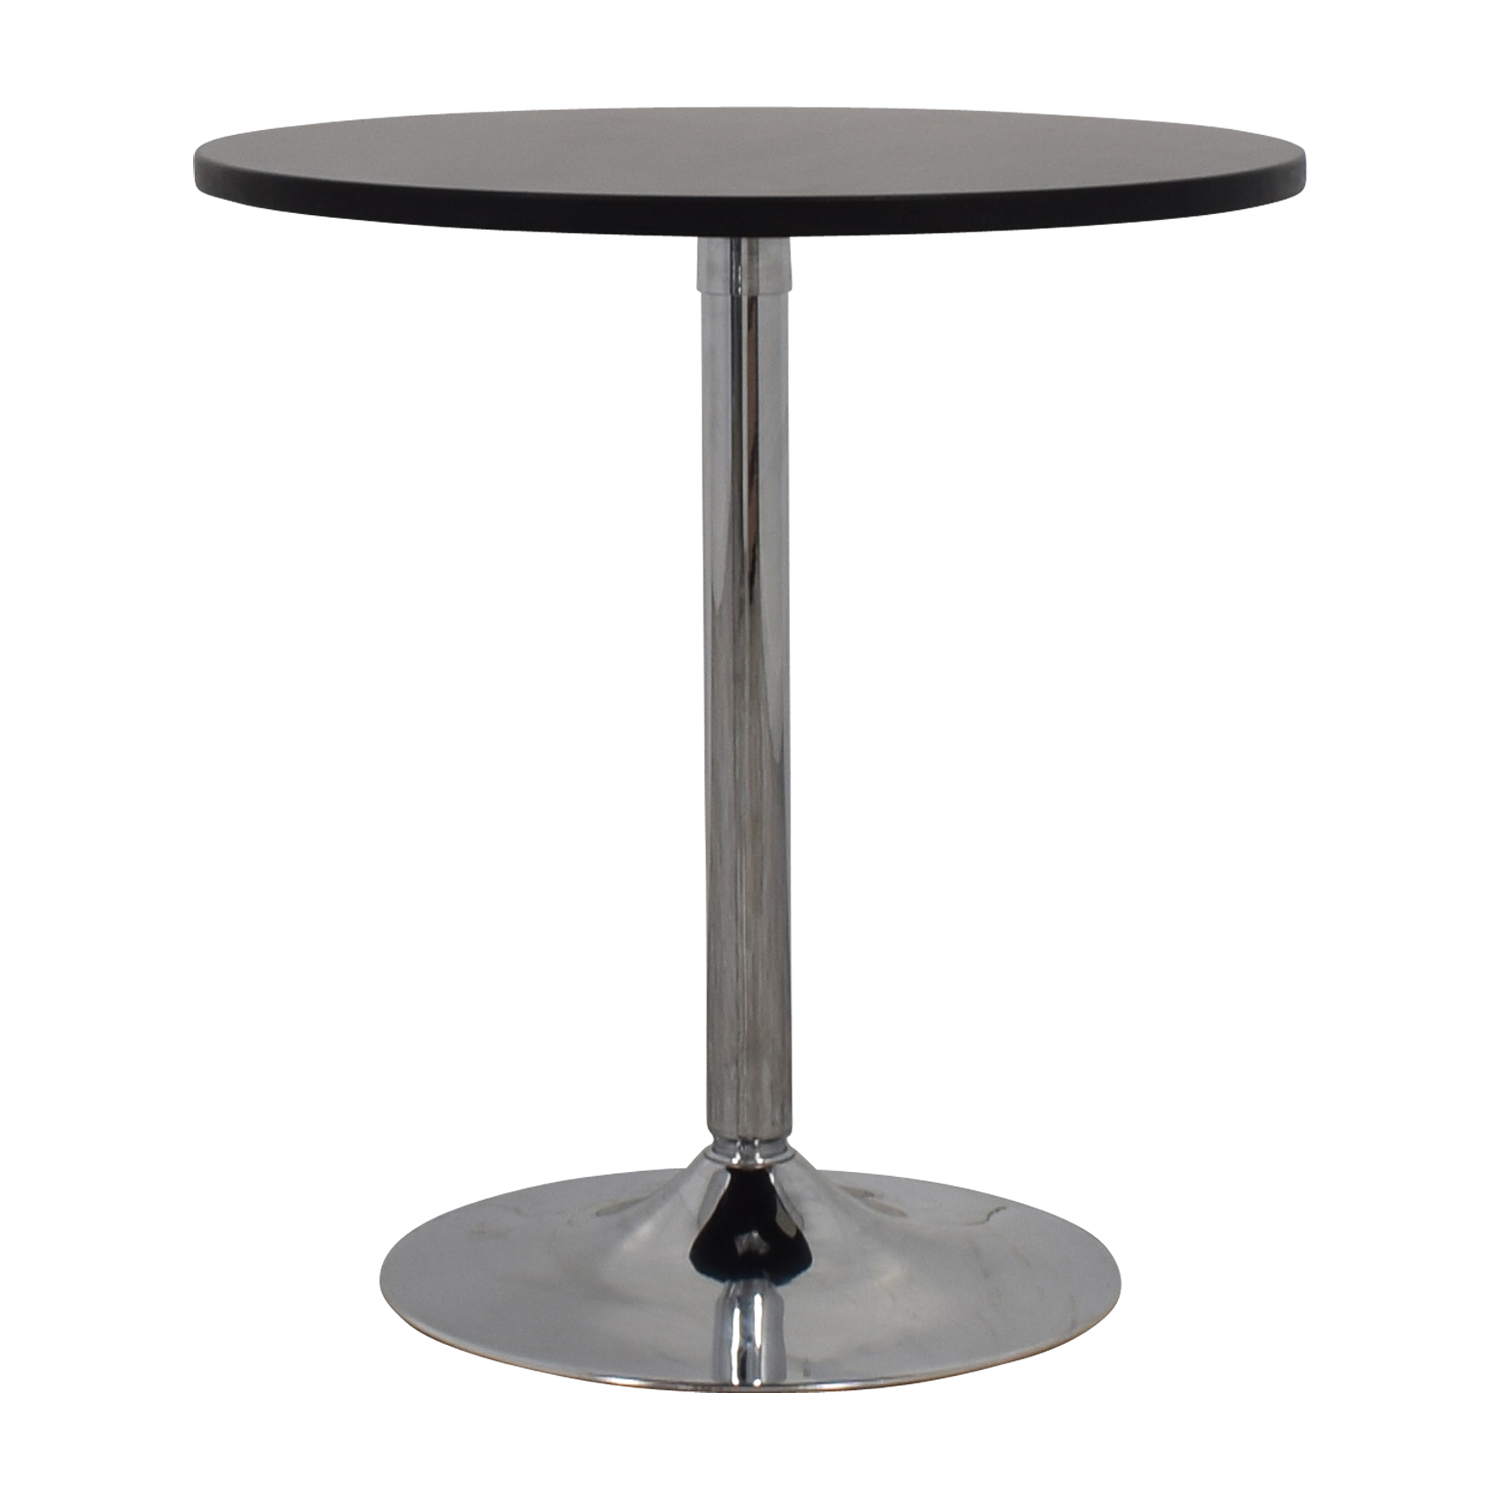 off pedestal accent table tables coupon small white occasional kitchen light fixtures and chair set with drawer shelf pallet modern marble top coffee outdoor nic mini lamps end